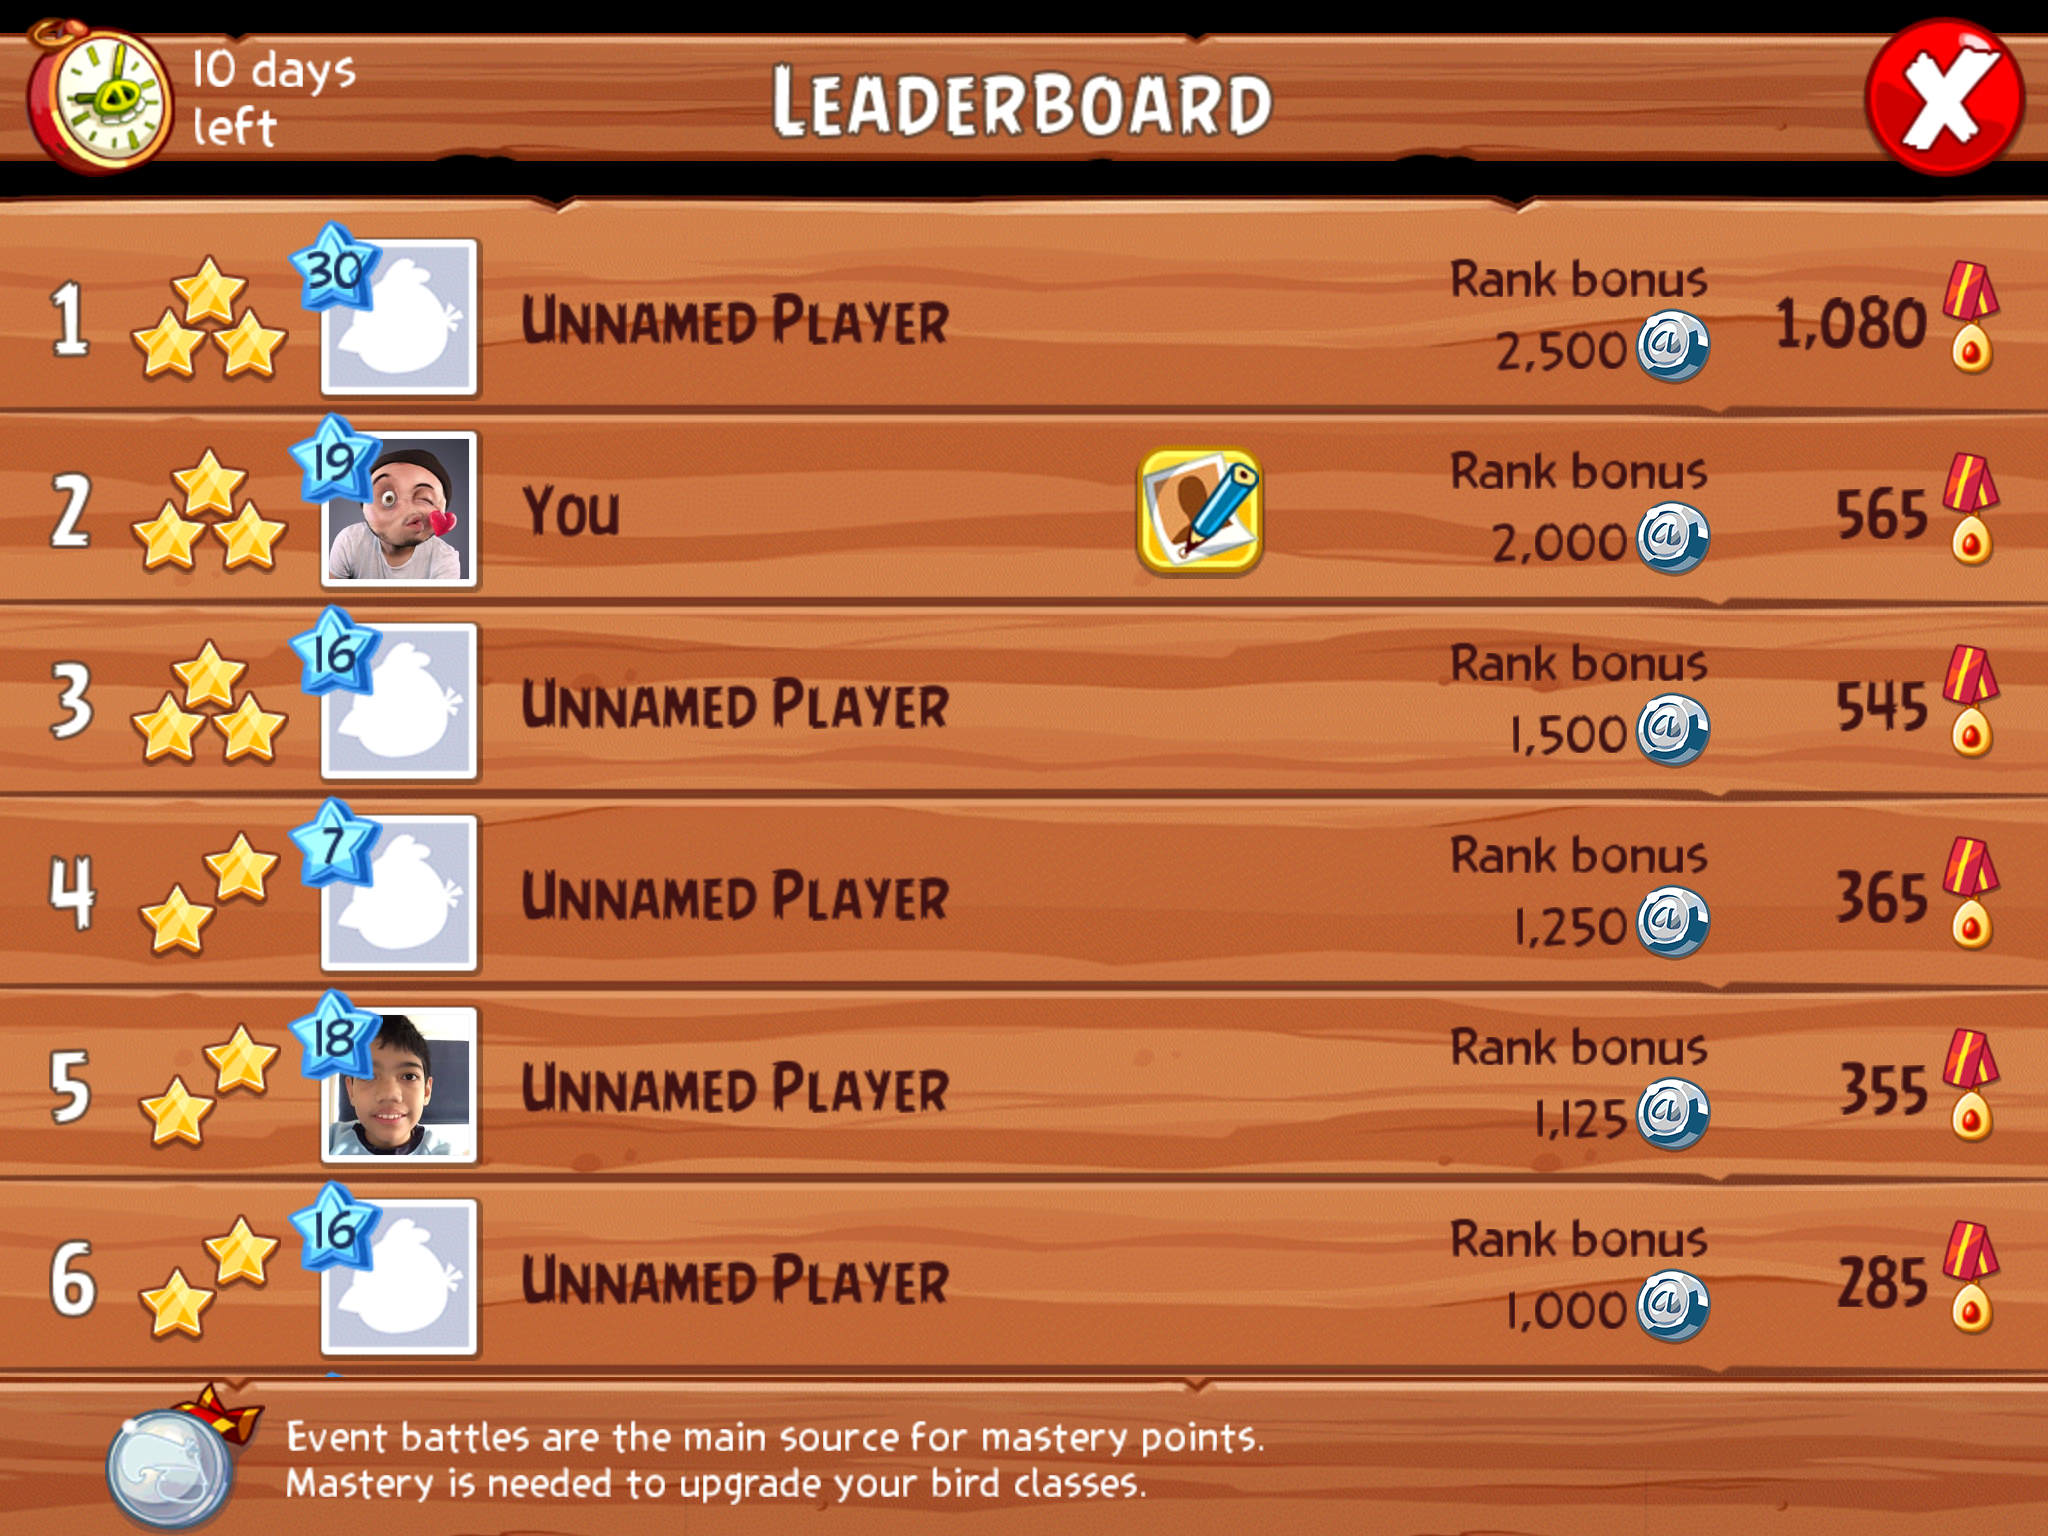 Angry Birds and Puzzle and Dragons partnership - Competitive Leaderboards